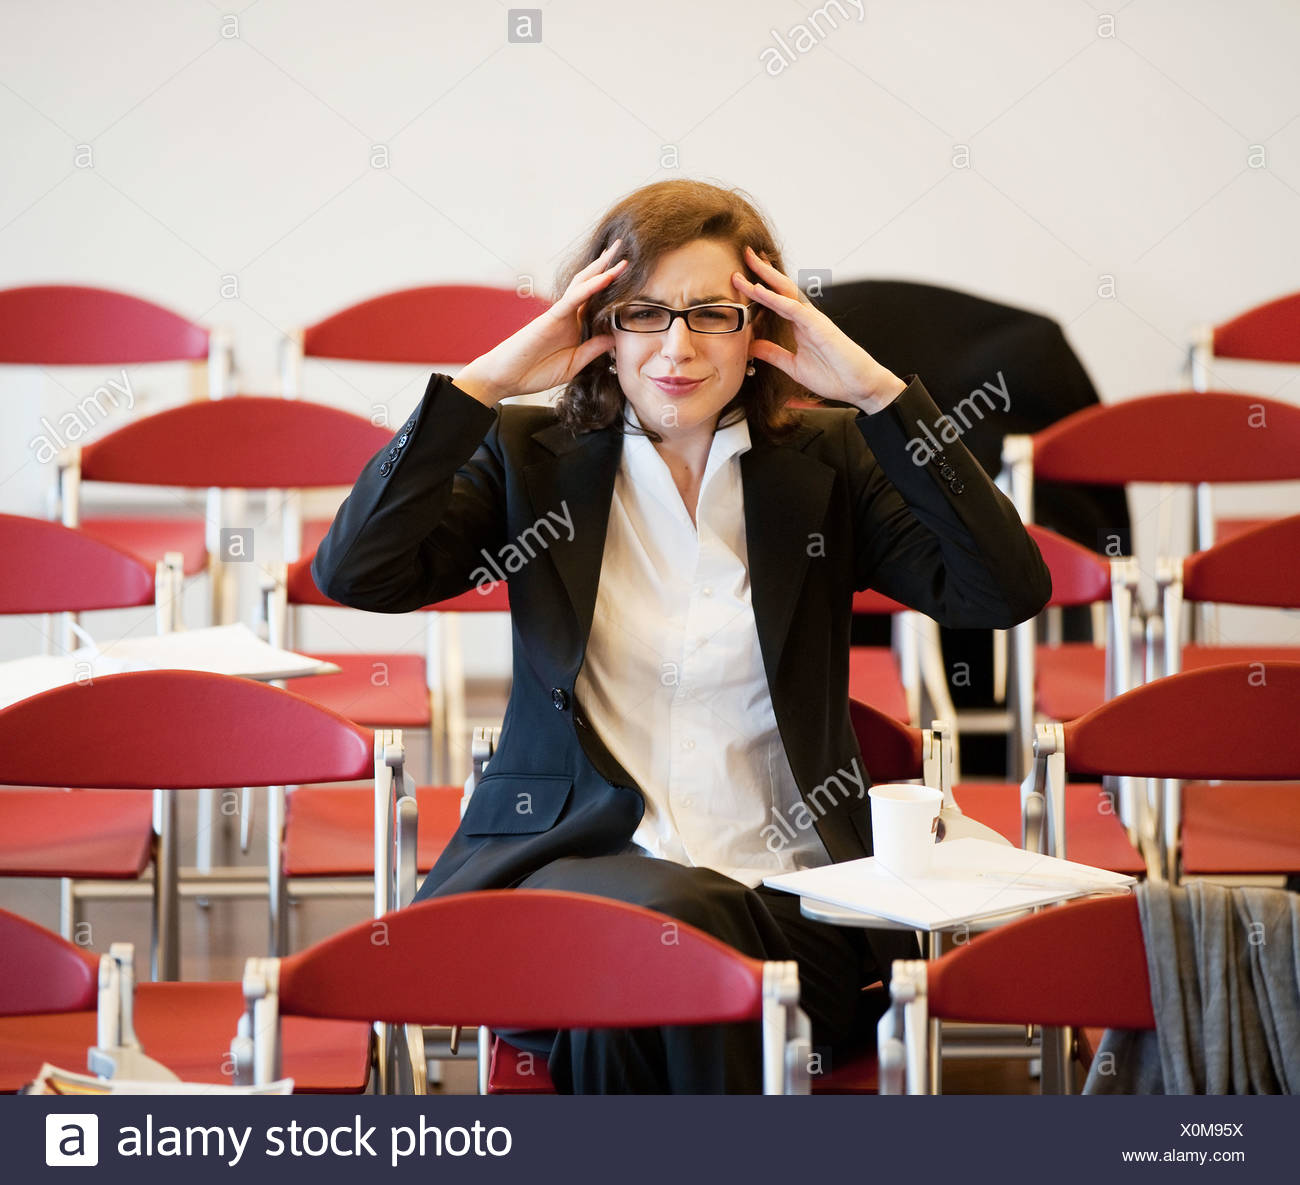 businesswoman stressed out after meeting - Stock Image